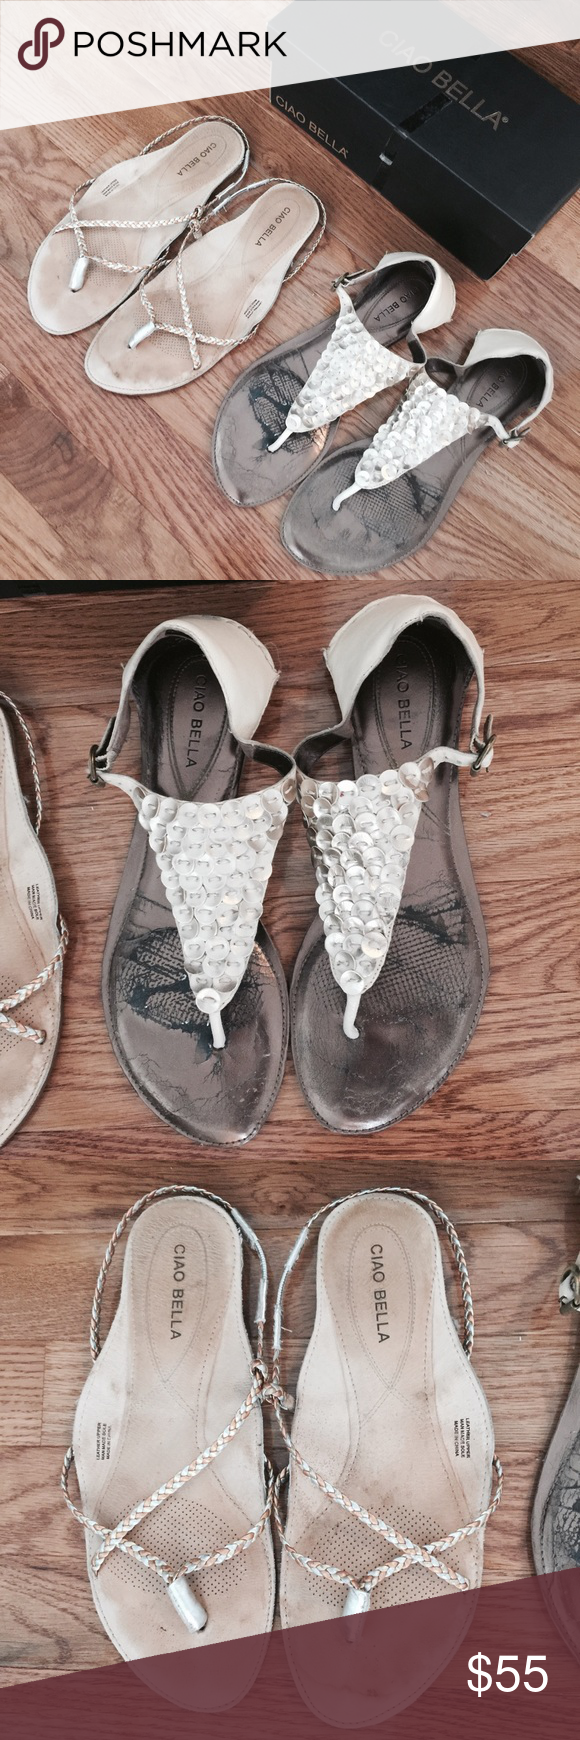 2 pairs! Anthropologie CIAO BELLA metallic sandals 2 pairs of sandals. Made by CIAO BELLA. Size 8.5 and 9. Shoes show wear. Leather upper and rubber soles. Please see pictures. Listing is for both pairs. Thanks for looking! Cheers🙂 Anthropologie Shoes Sandals